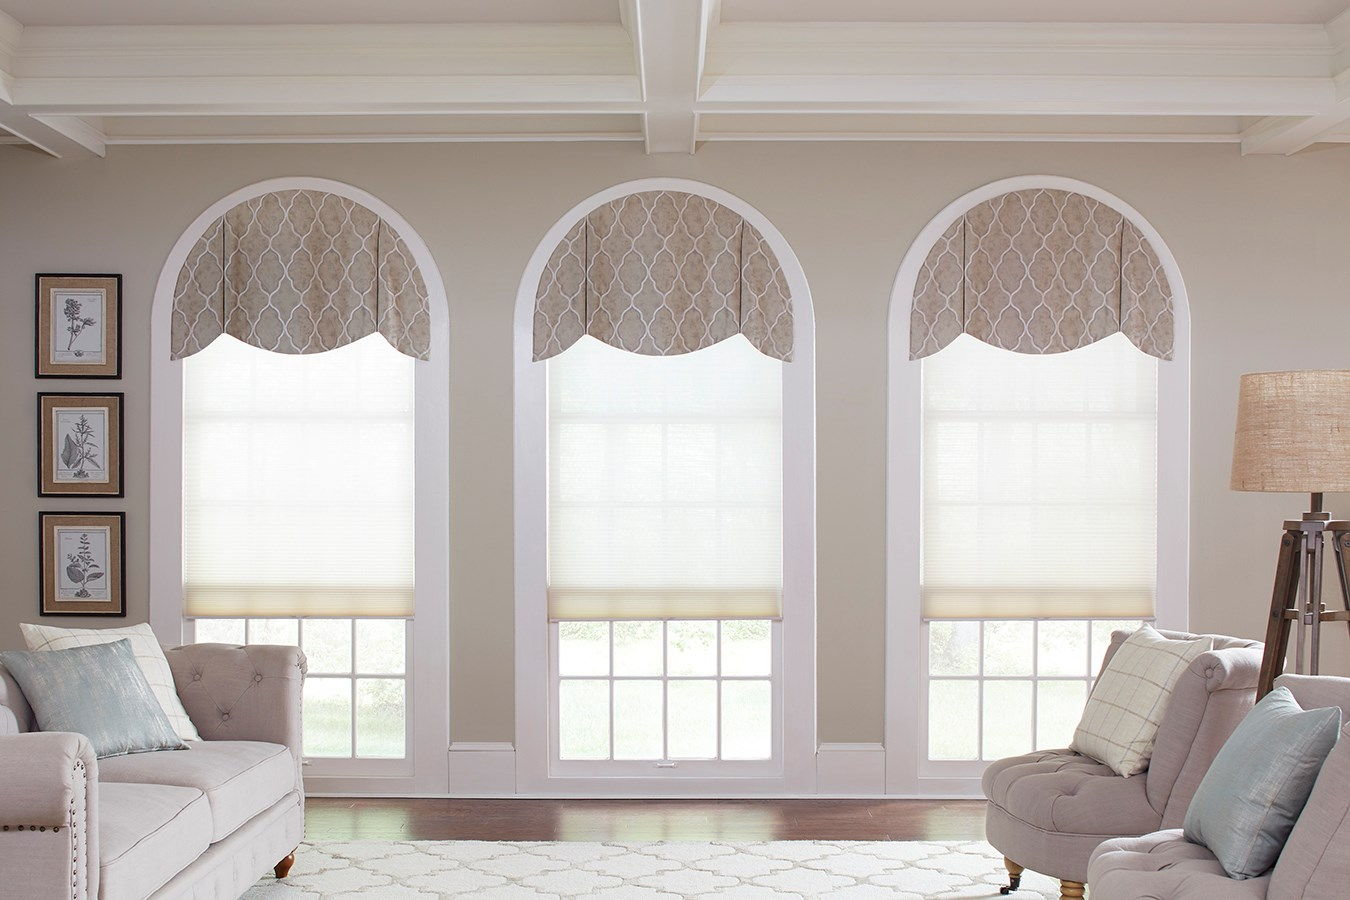 Arched window top treatments